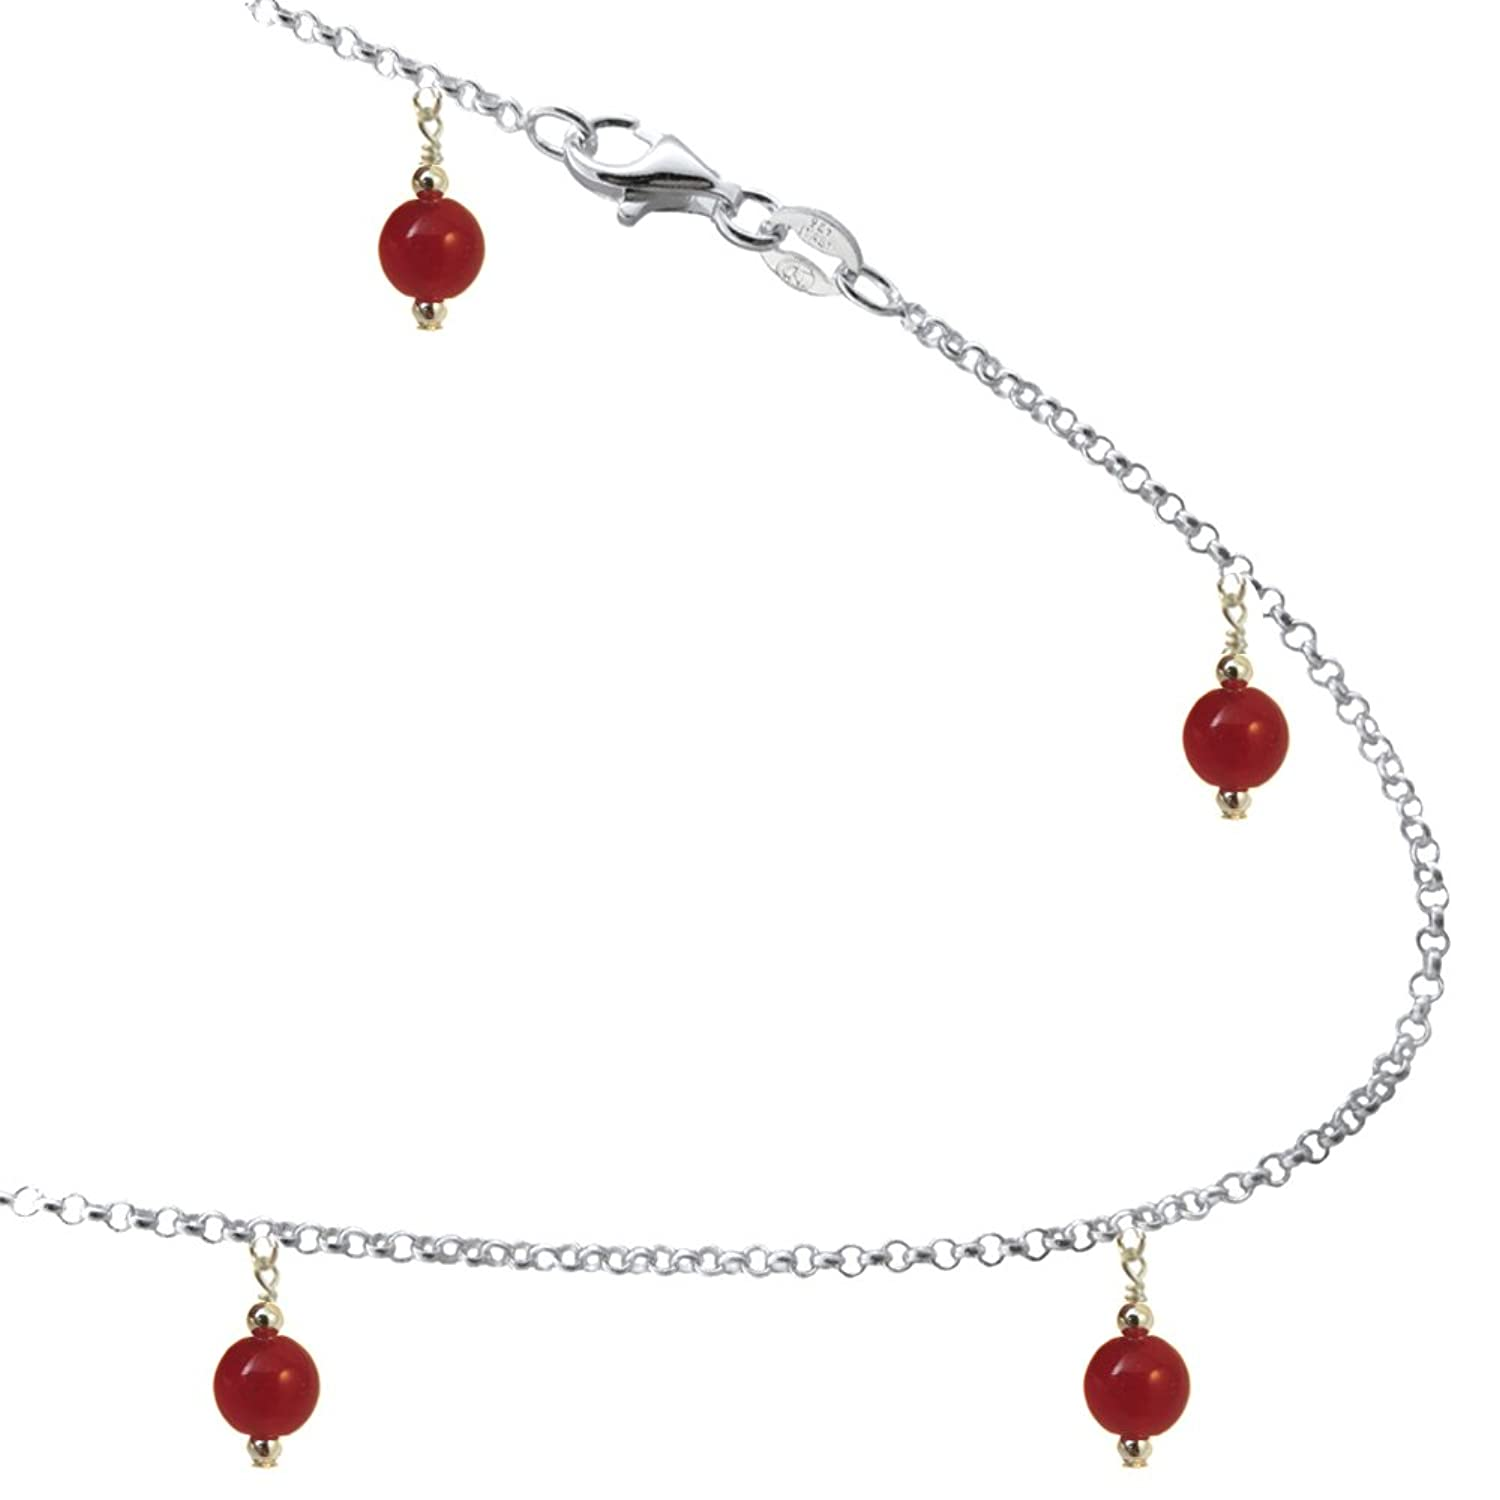 6mm Red Agate Colored Beads with Sterling Silver Link Anklet, Bracelet. 7,8,9,10,11,12,13 Inches